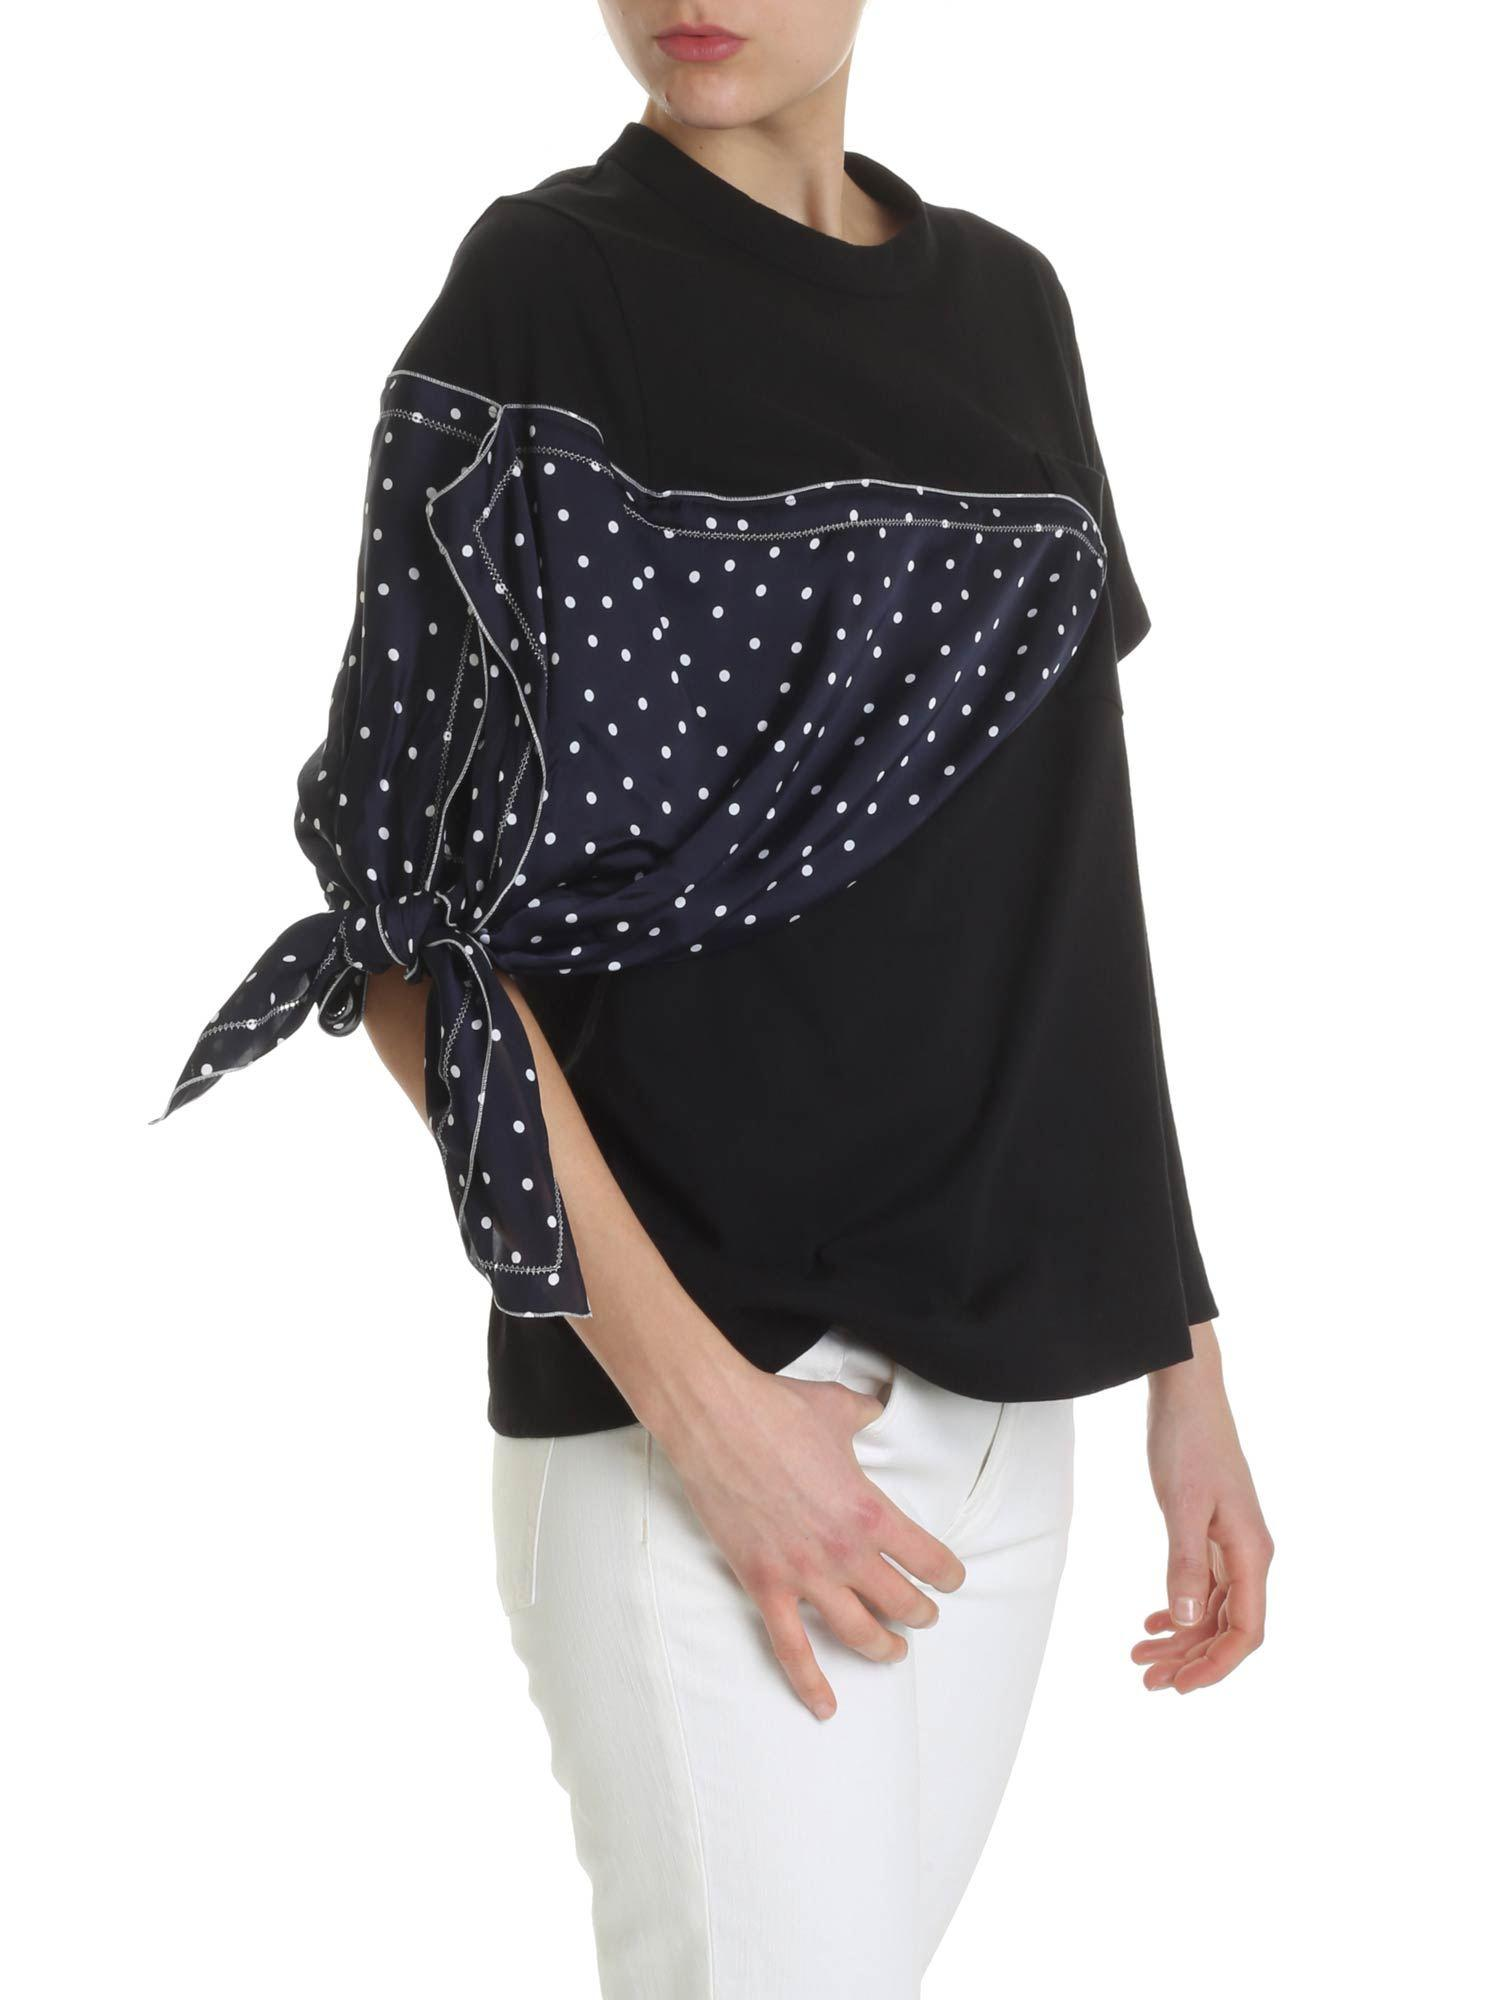 037e375a475 sacai-black-T-shirt-In-Black-With-Polka-Dot-Insert.jpeg